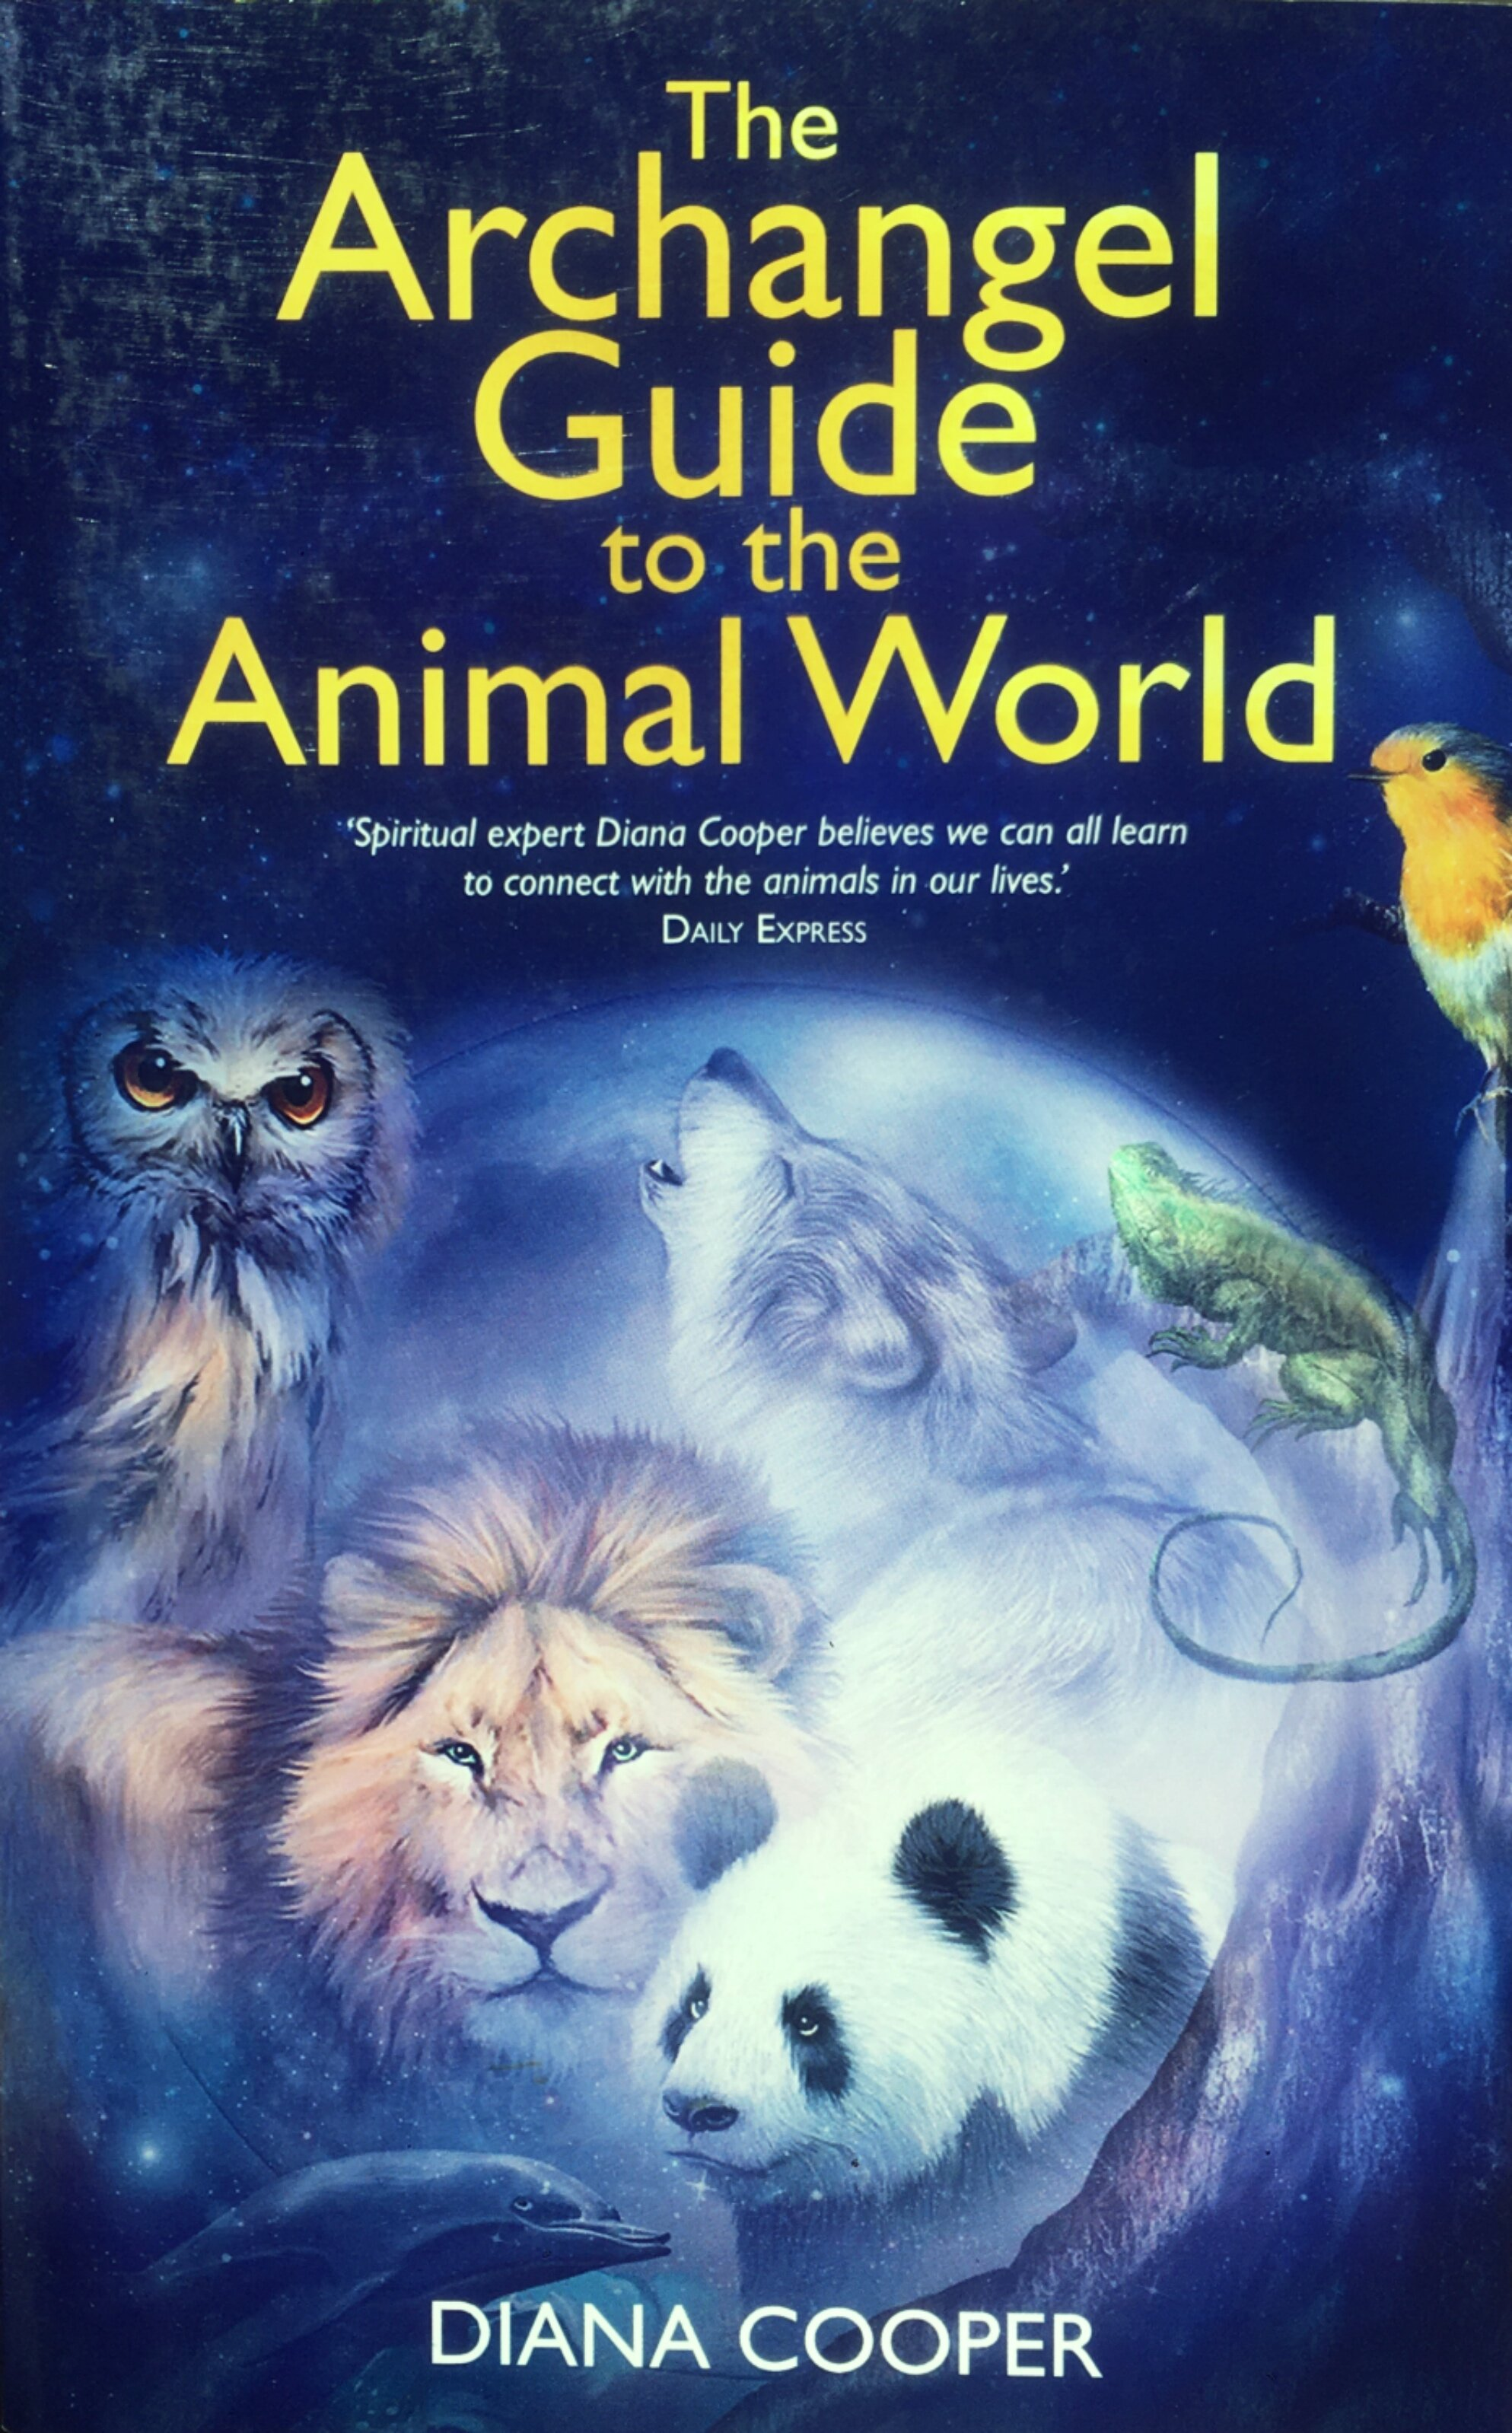 The Archangel Guide to the Animal World BOOK.jpg